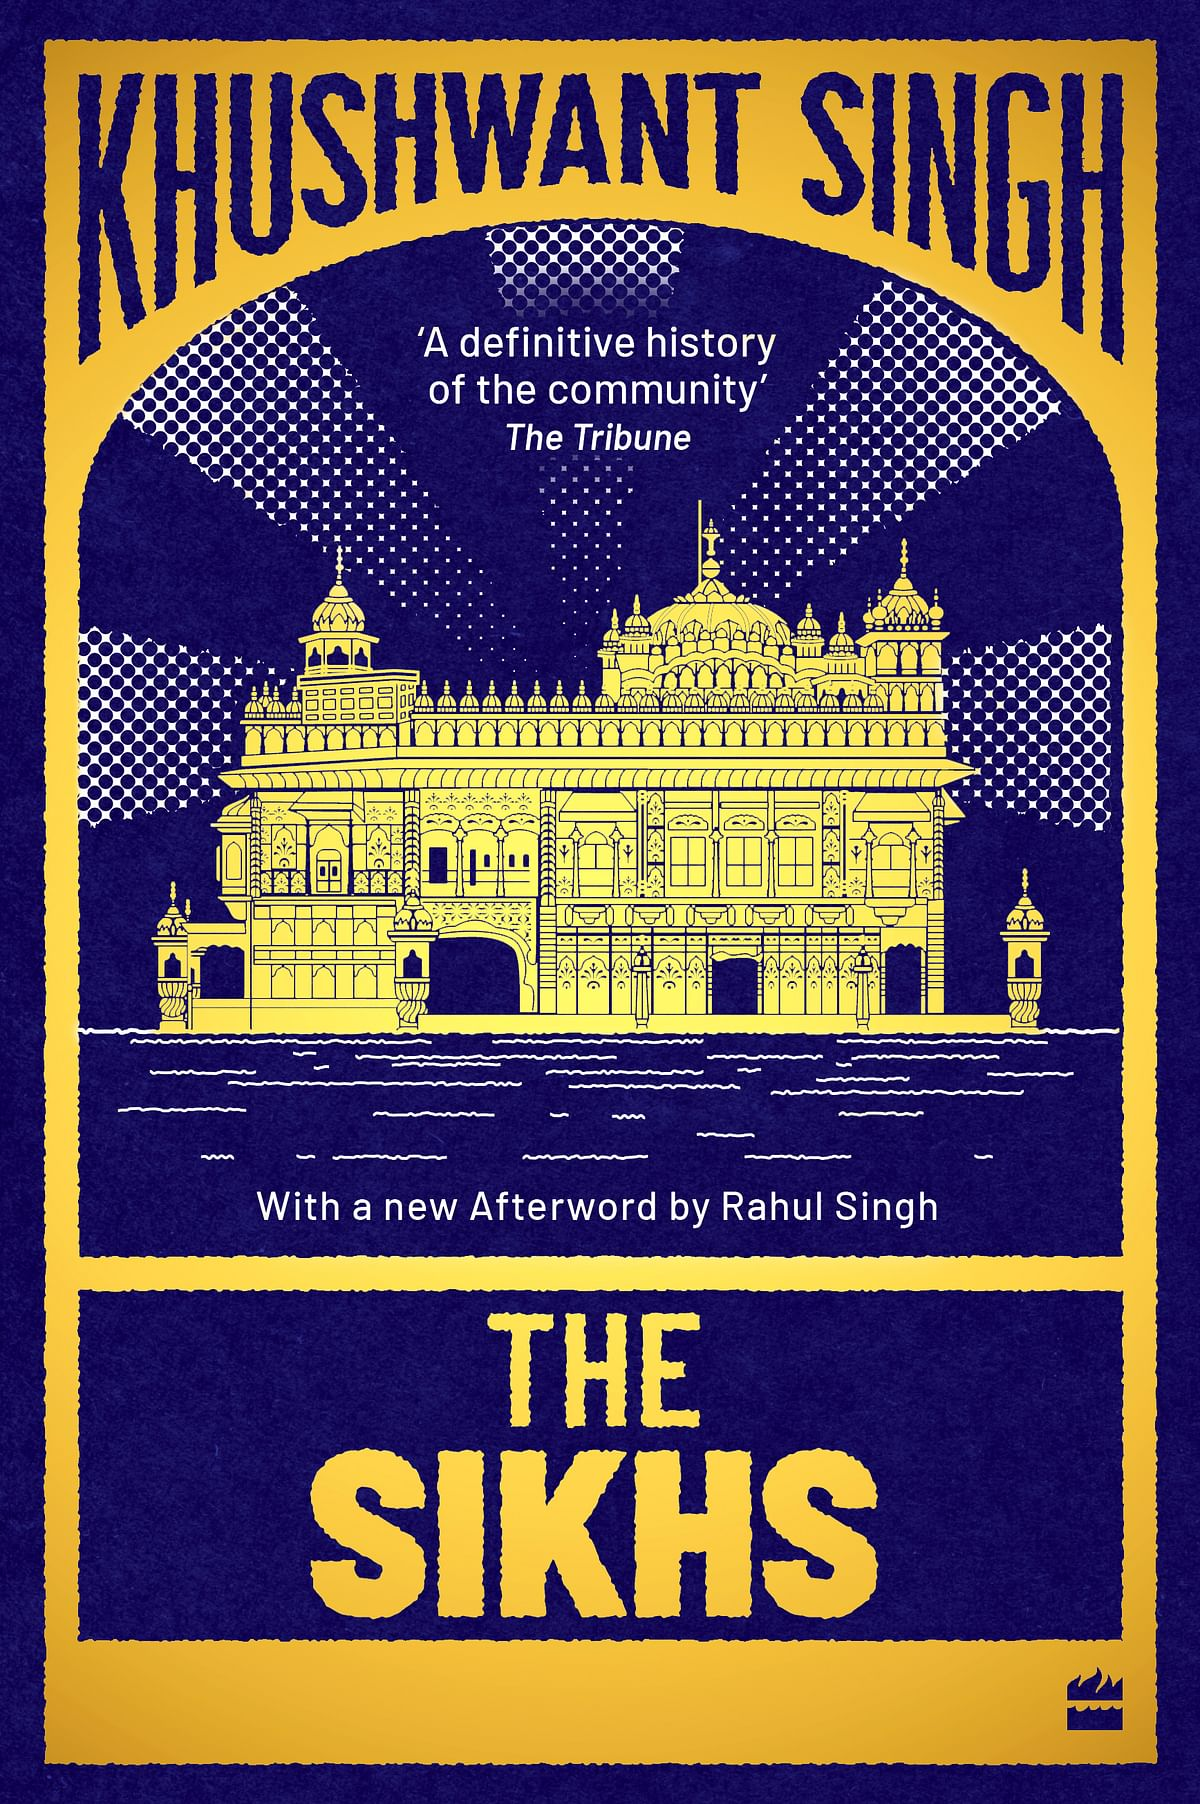 Image of book cover for Khushwant Singh's (new and updated) book republished by Harper Collins, 'The Sikhs'.